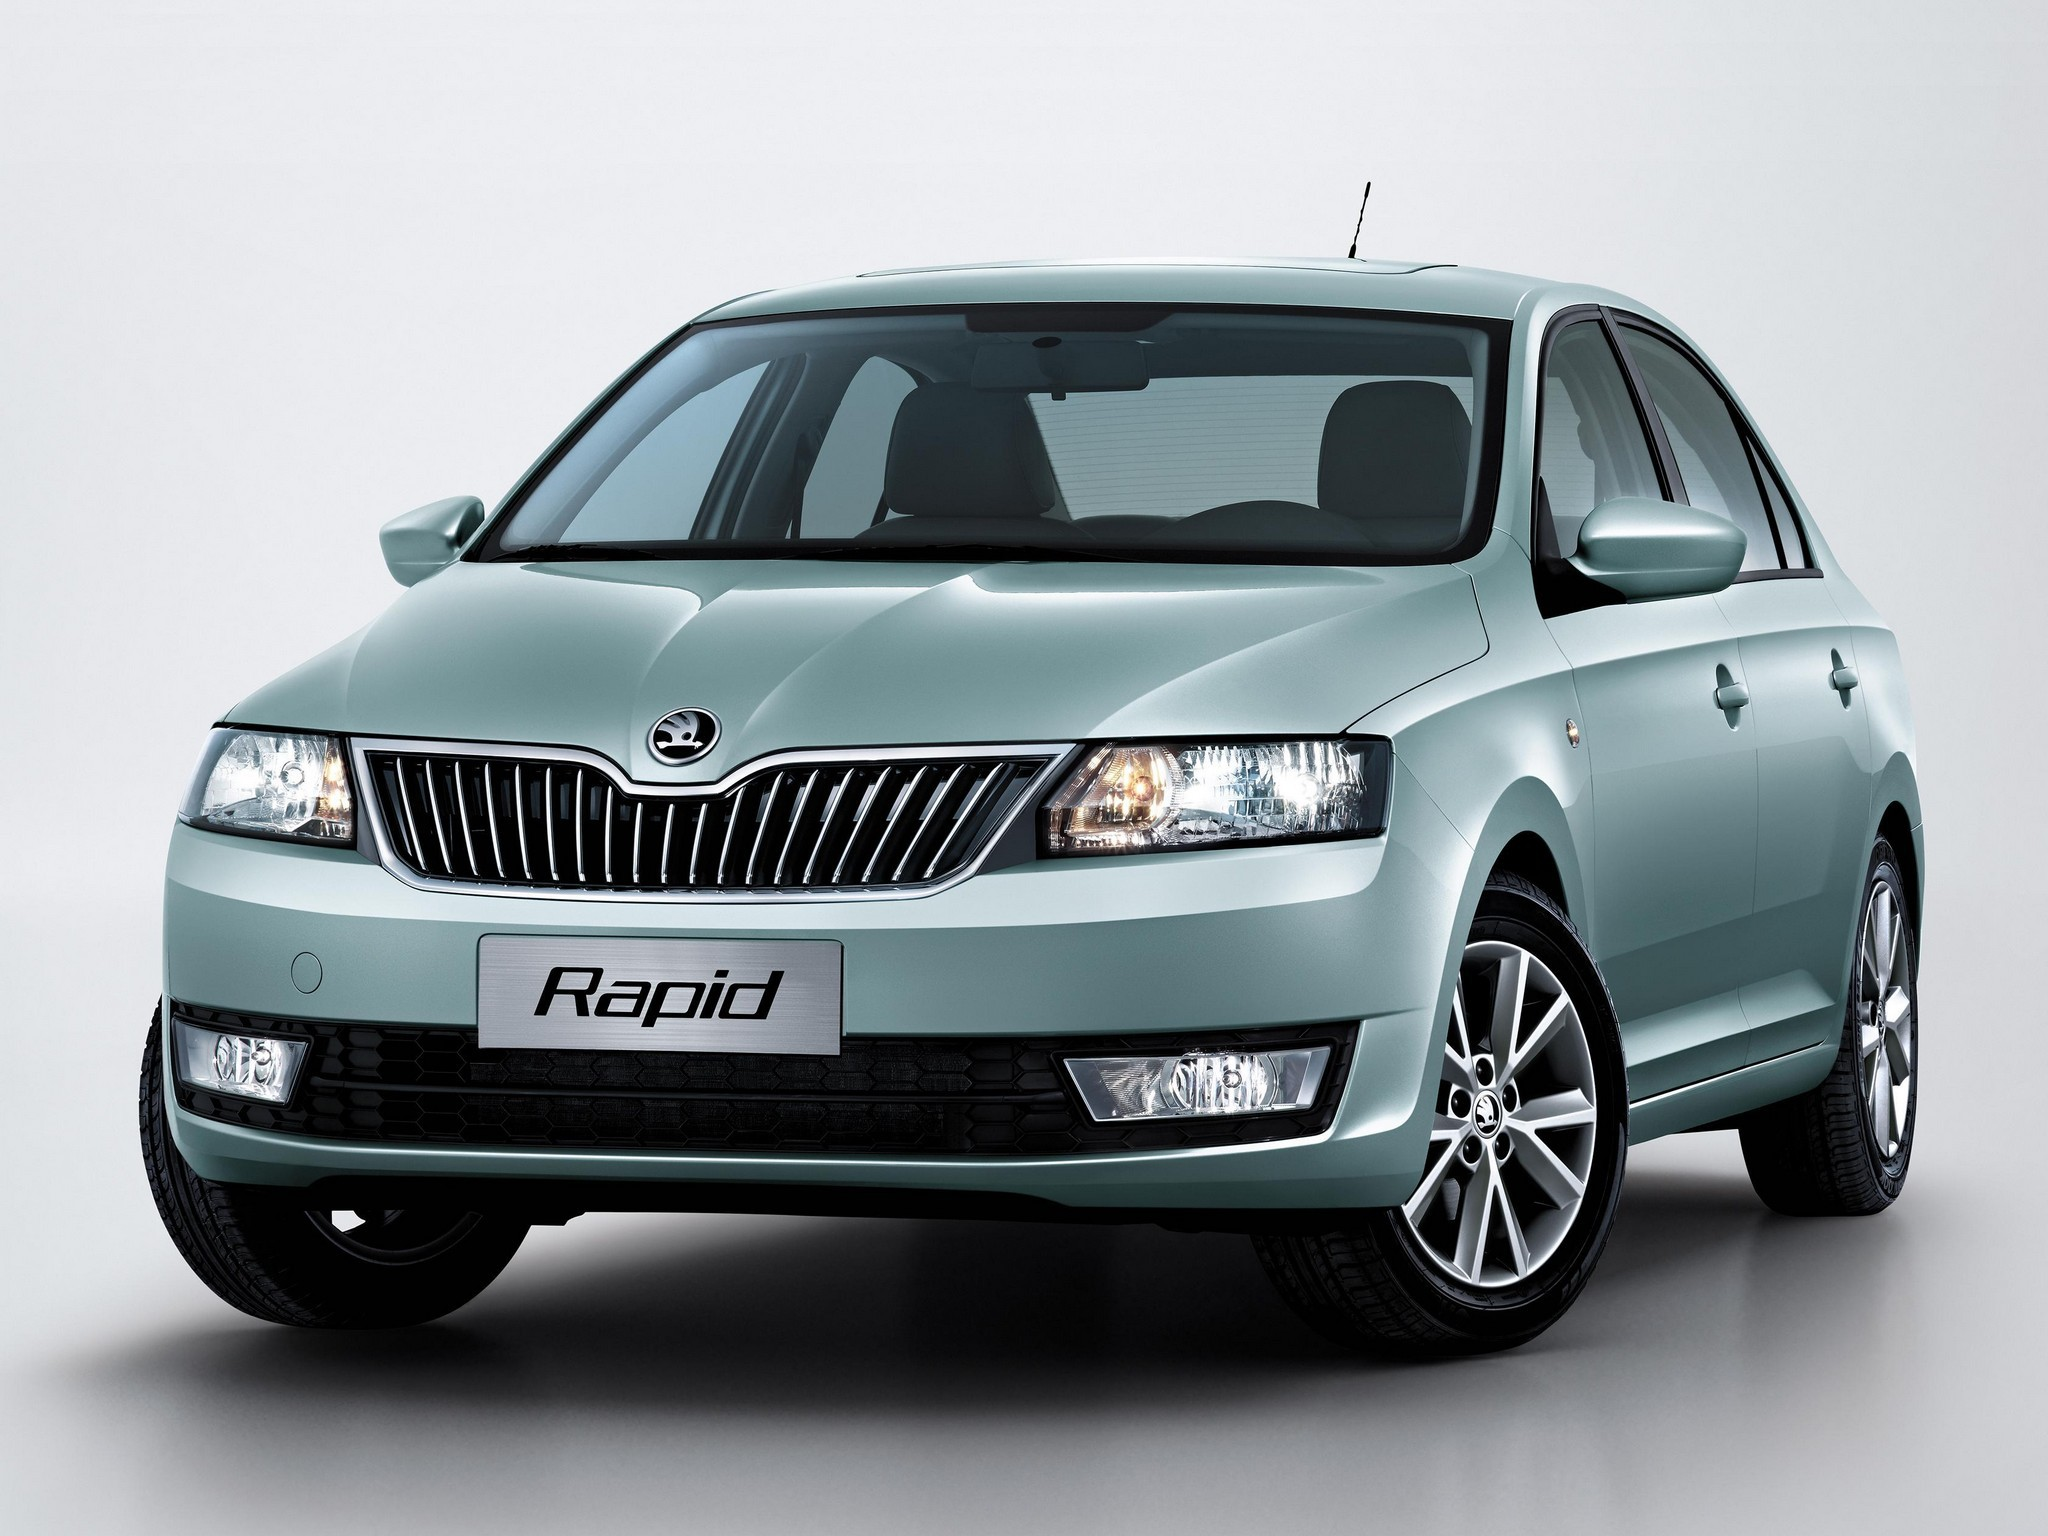 Skoda Cars Models 6 Cool Car Wallpaper